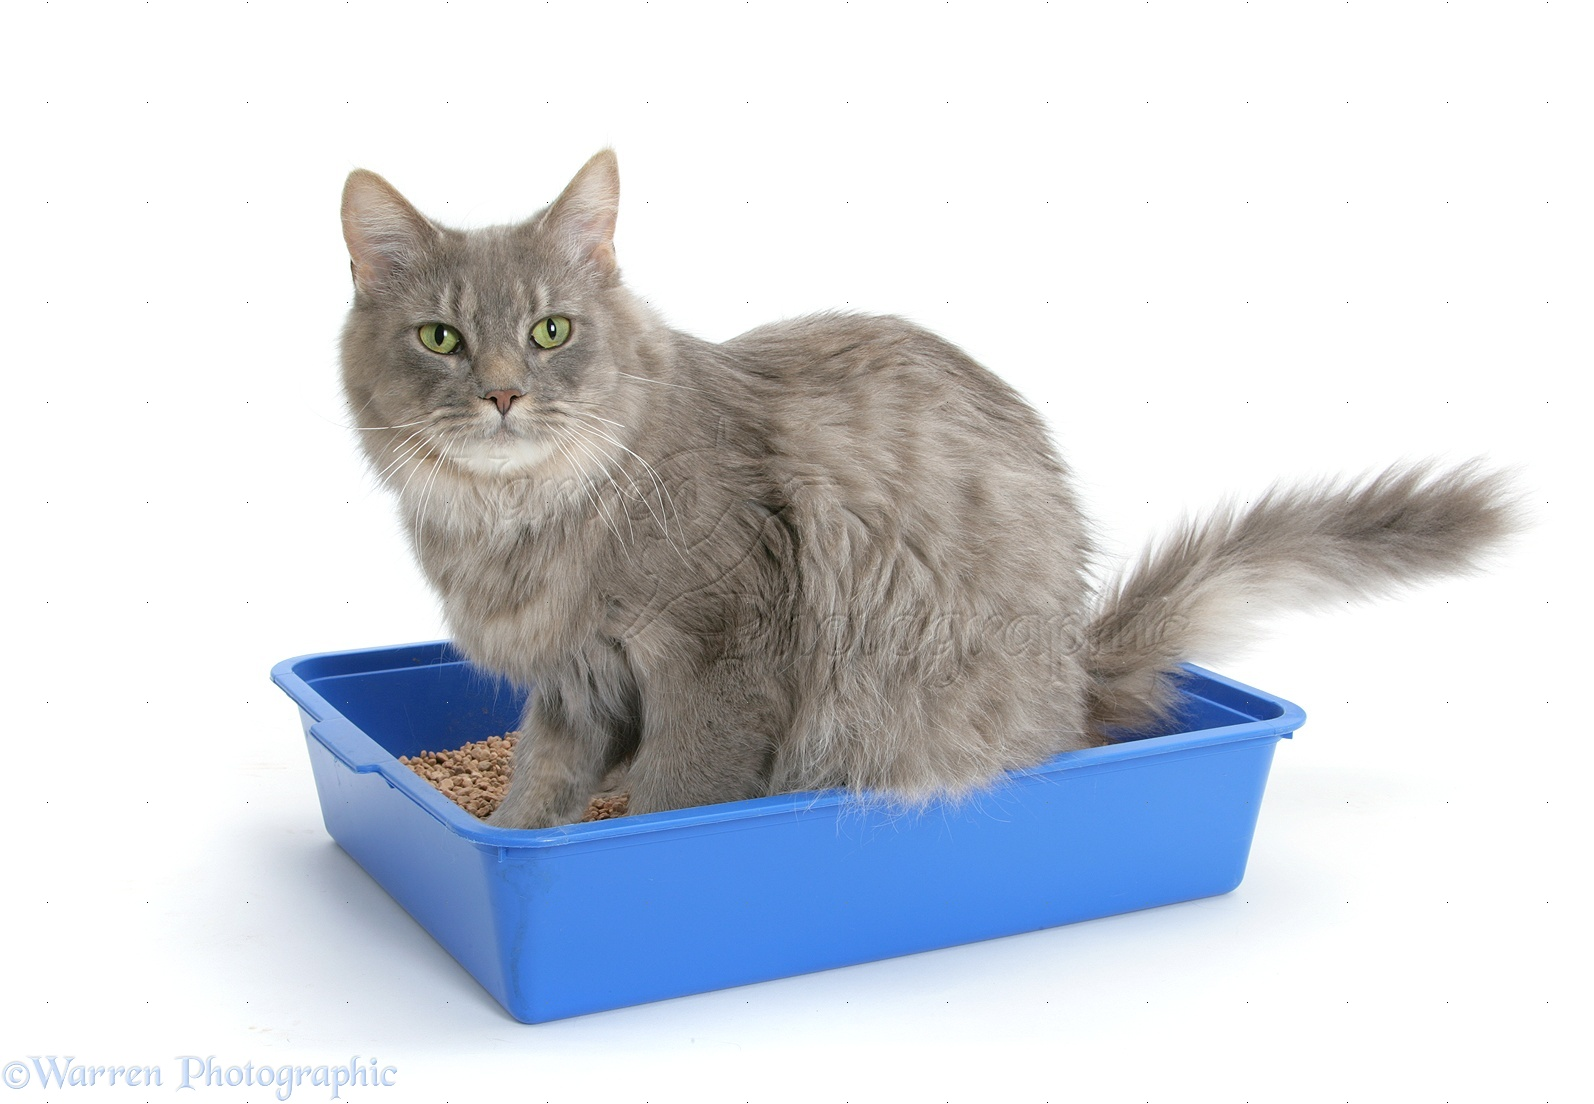 WP32959 Adult Maine Coon female cat, Serafin , using a litter tray.